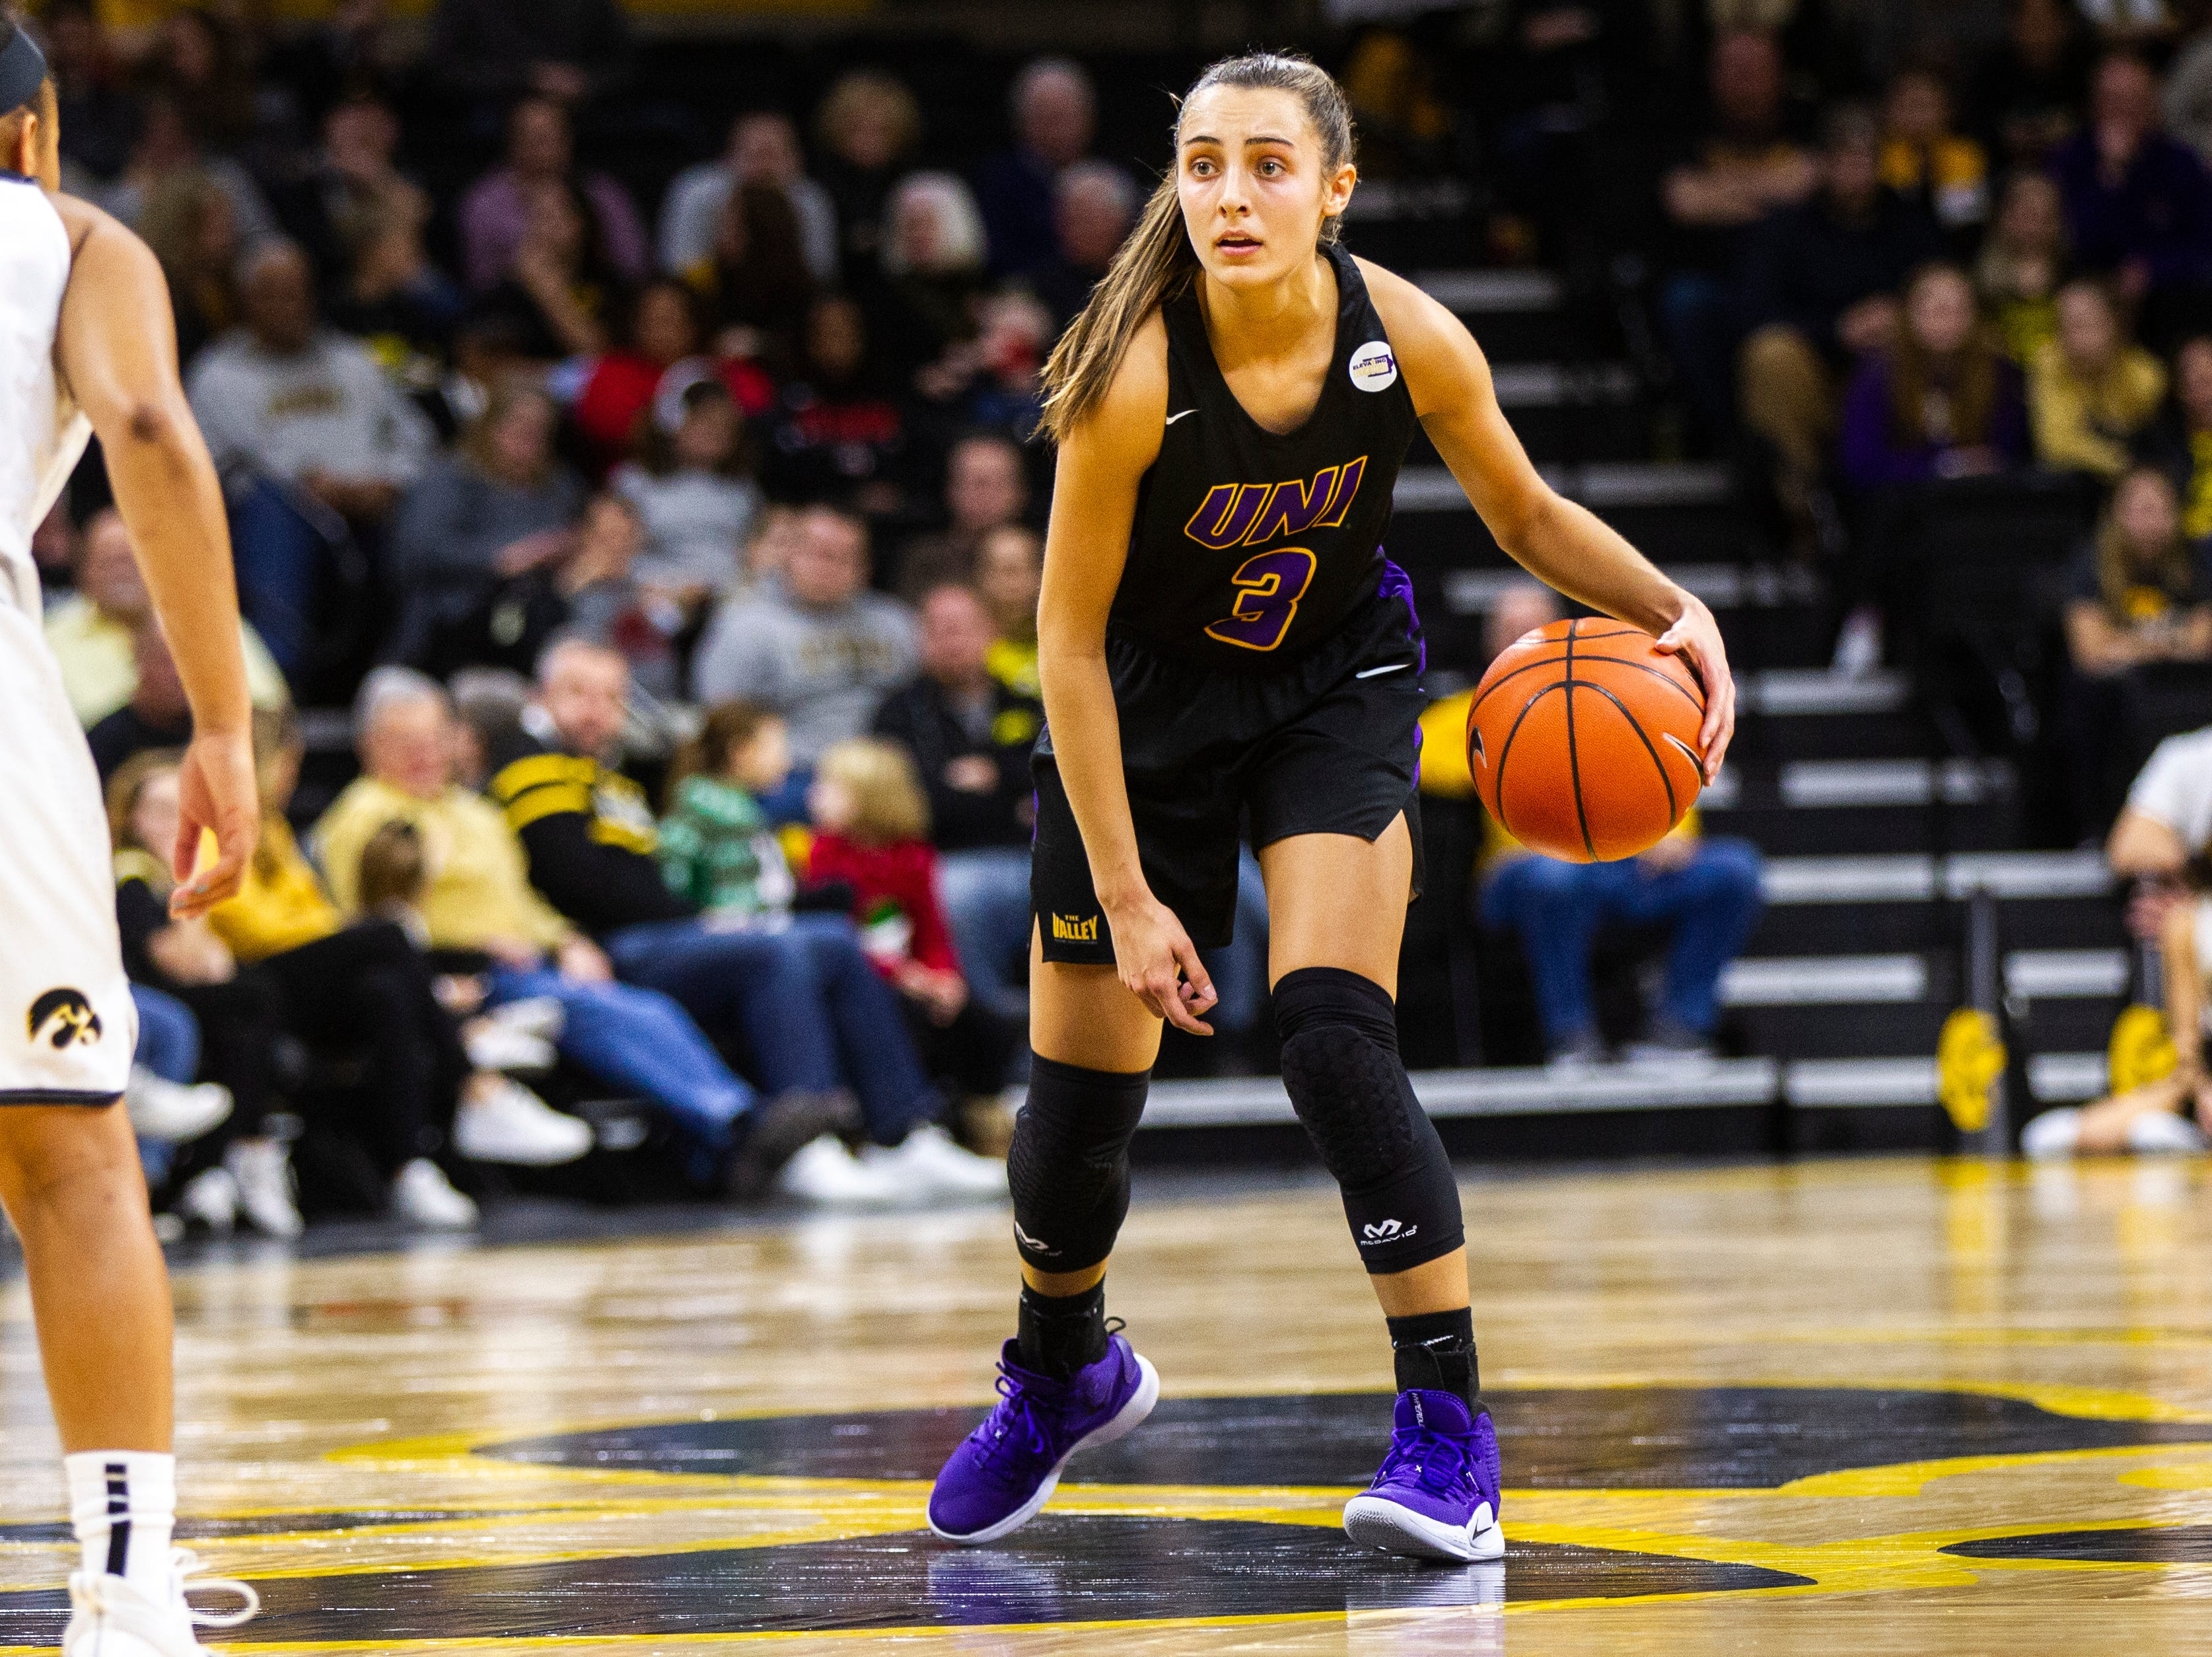 Northern Iowa guard Karli Rucker (3) looks over the court during a NCAA women's basketball game on Sunday, Dec. 16, 2018, at Carver-Hawkeye Arena in Iowa City.